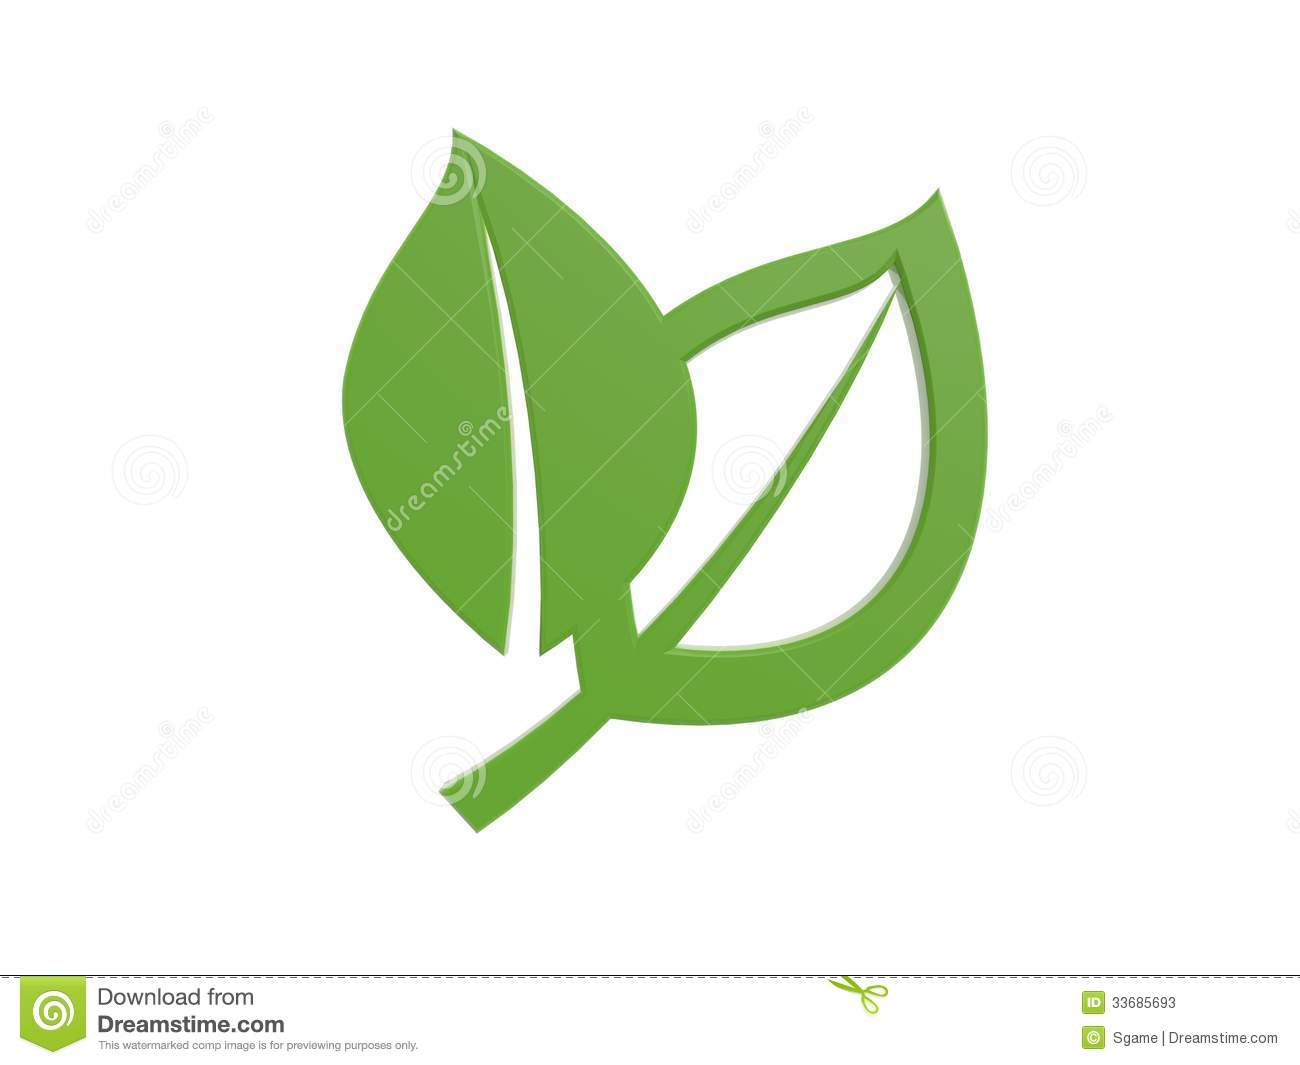 Leaf Symbol Stock Photos, Royalty-Free Images & Vectors - Shutterstock